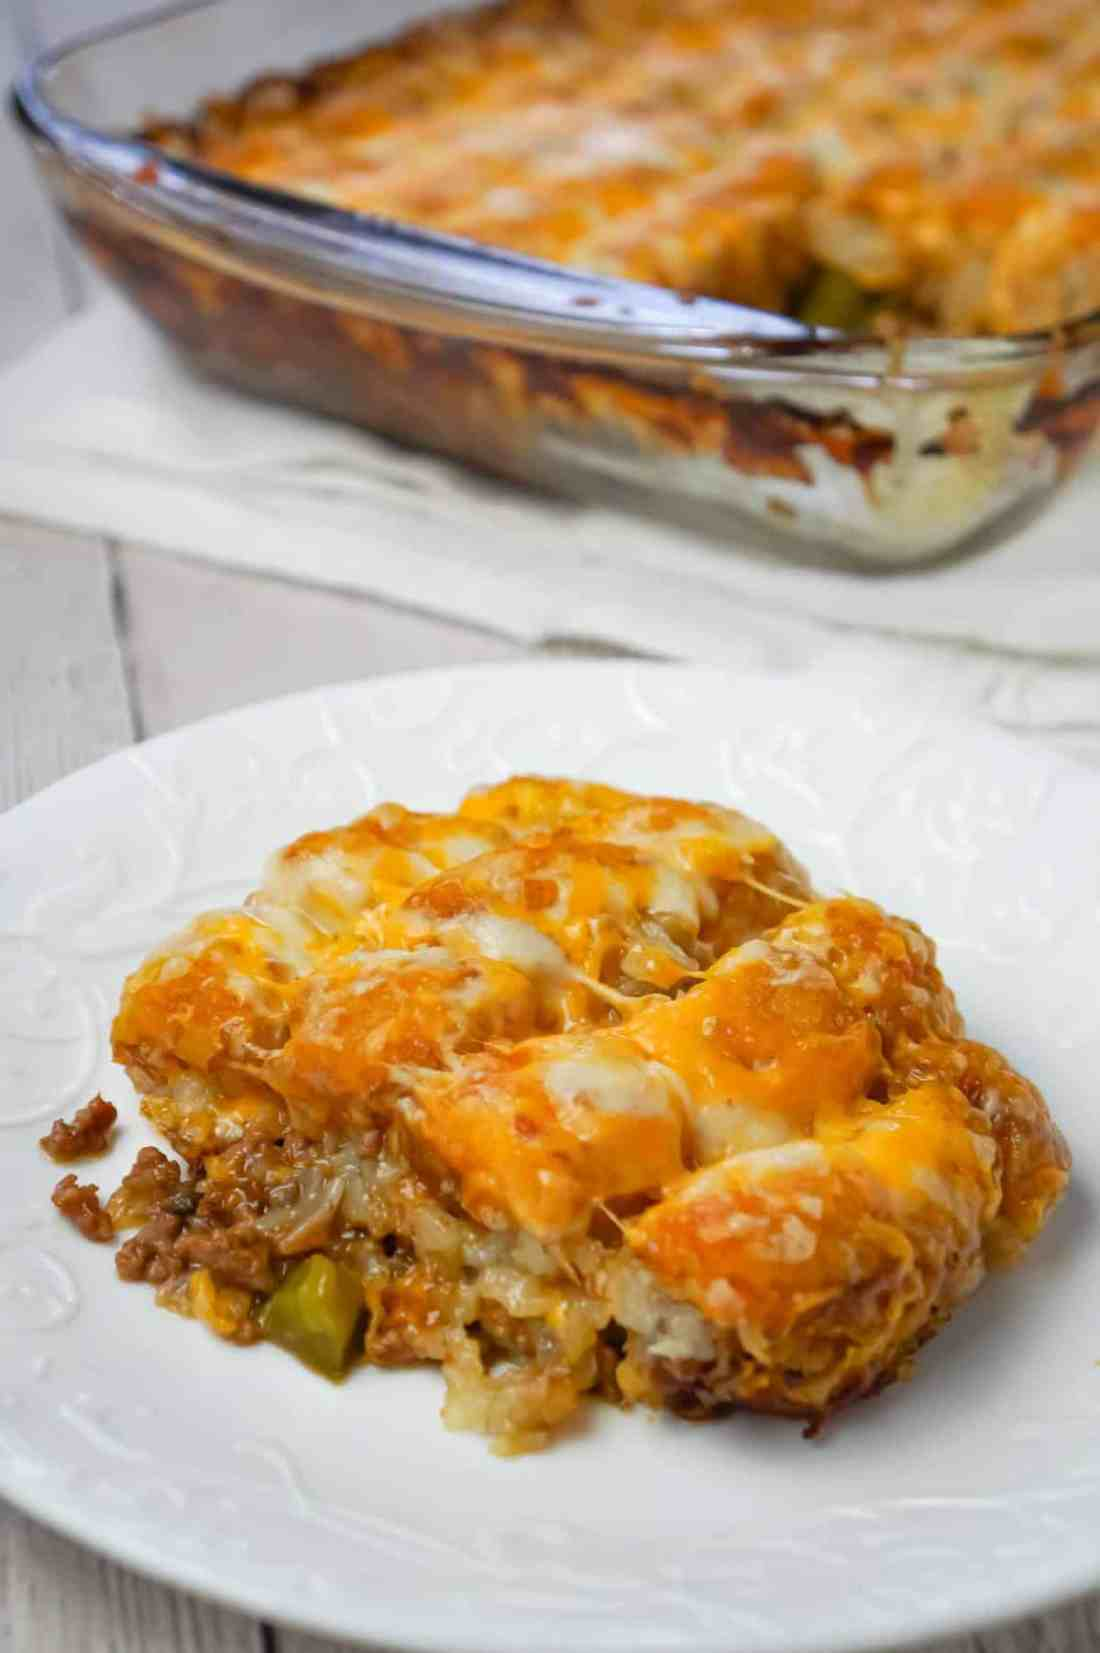 Philly Cheese Steak Tater Tot Casserole is a hearty dinner recipe with a base of ground beef, diced onion, diced green peppers and sliced mushrooms tossed in brown gravy and topped with shredded cheese and tater tots.